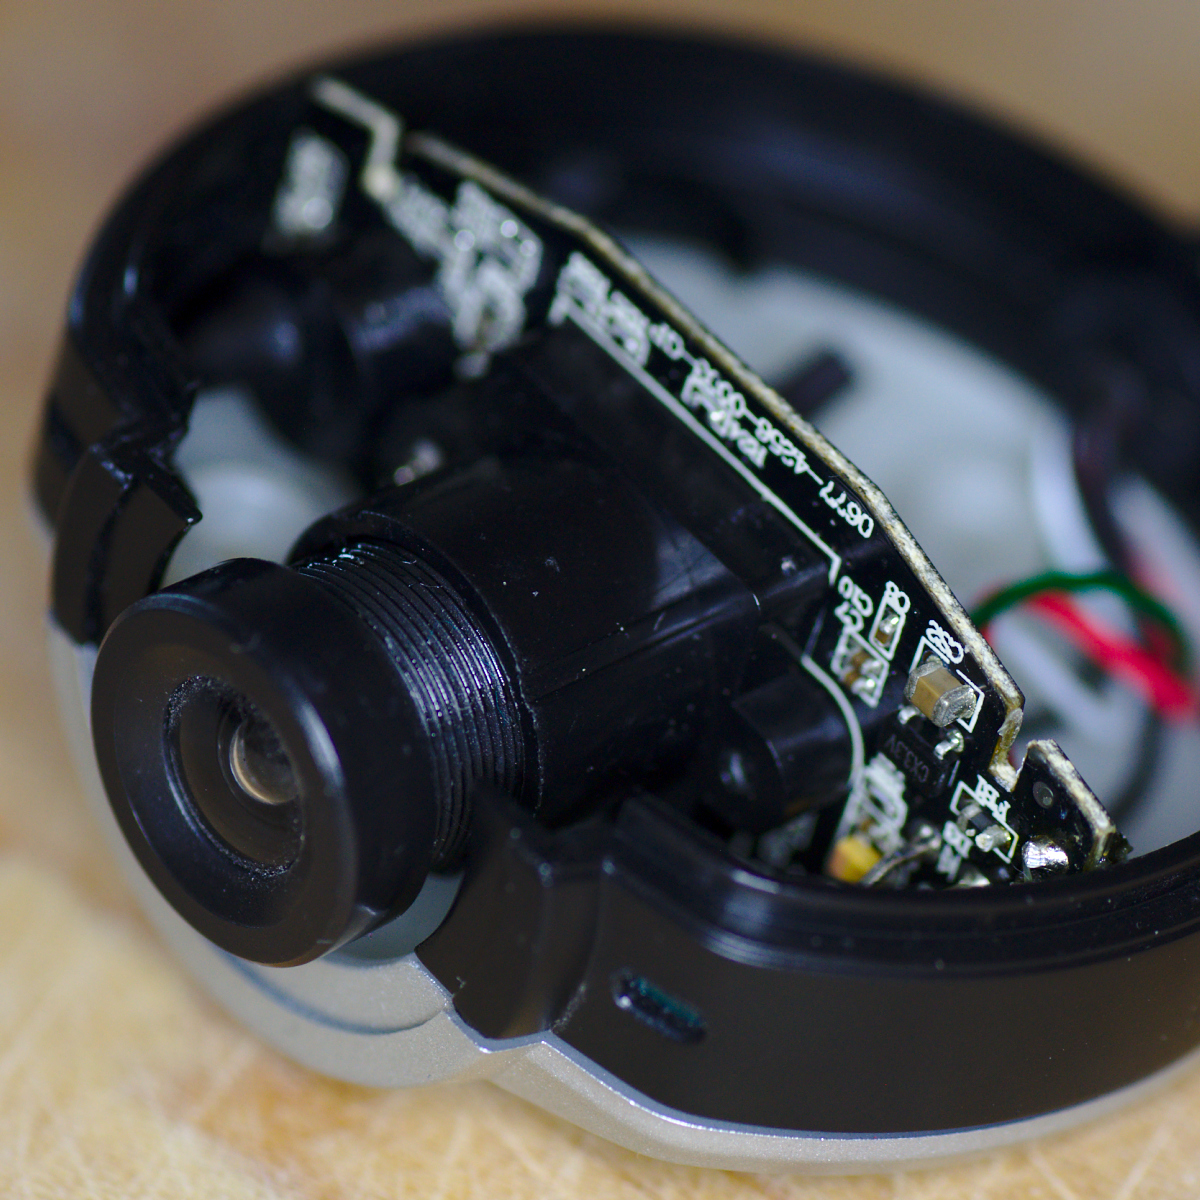 the webcam with the top part of the case removed  the case turns out to be  mostly empty, with just one small circuit board to which the lens is  attached